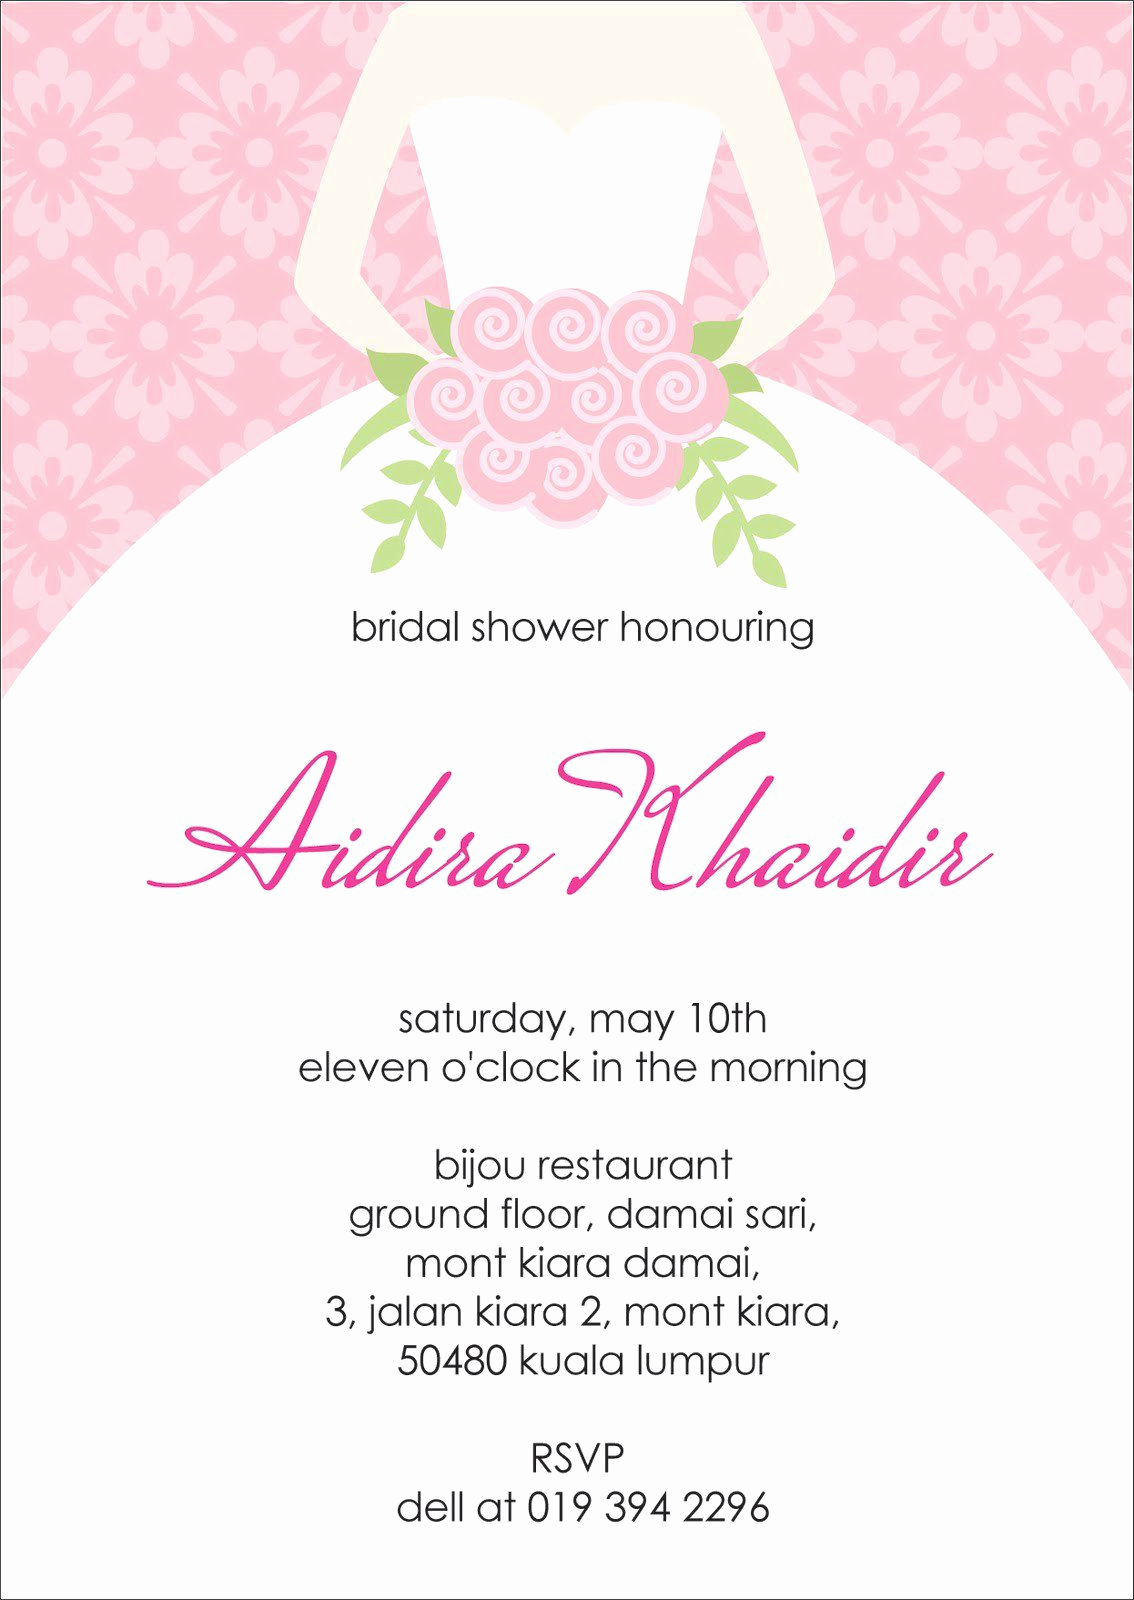 Bridal Shower Invitation Images Luxury Bridal Shower Invitations Bridal Shower Invitation